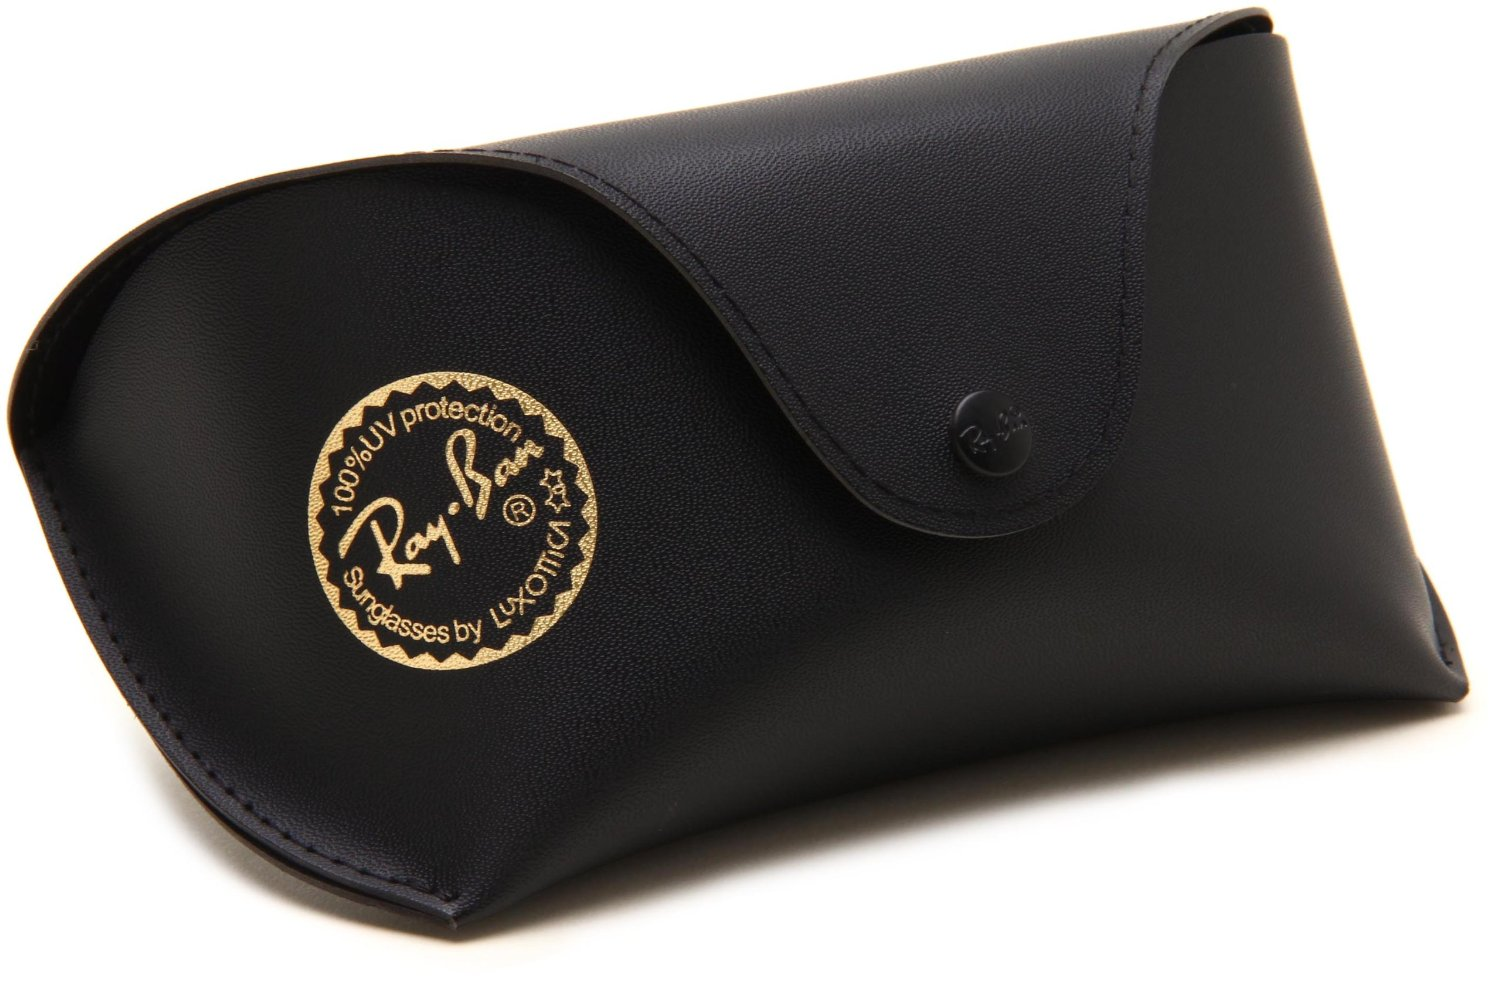 Ray Ban Sunglass Cases For  mens ray ban sunglass case global business forum iitbaa